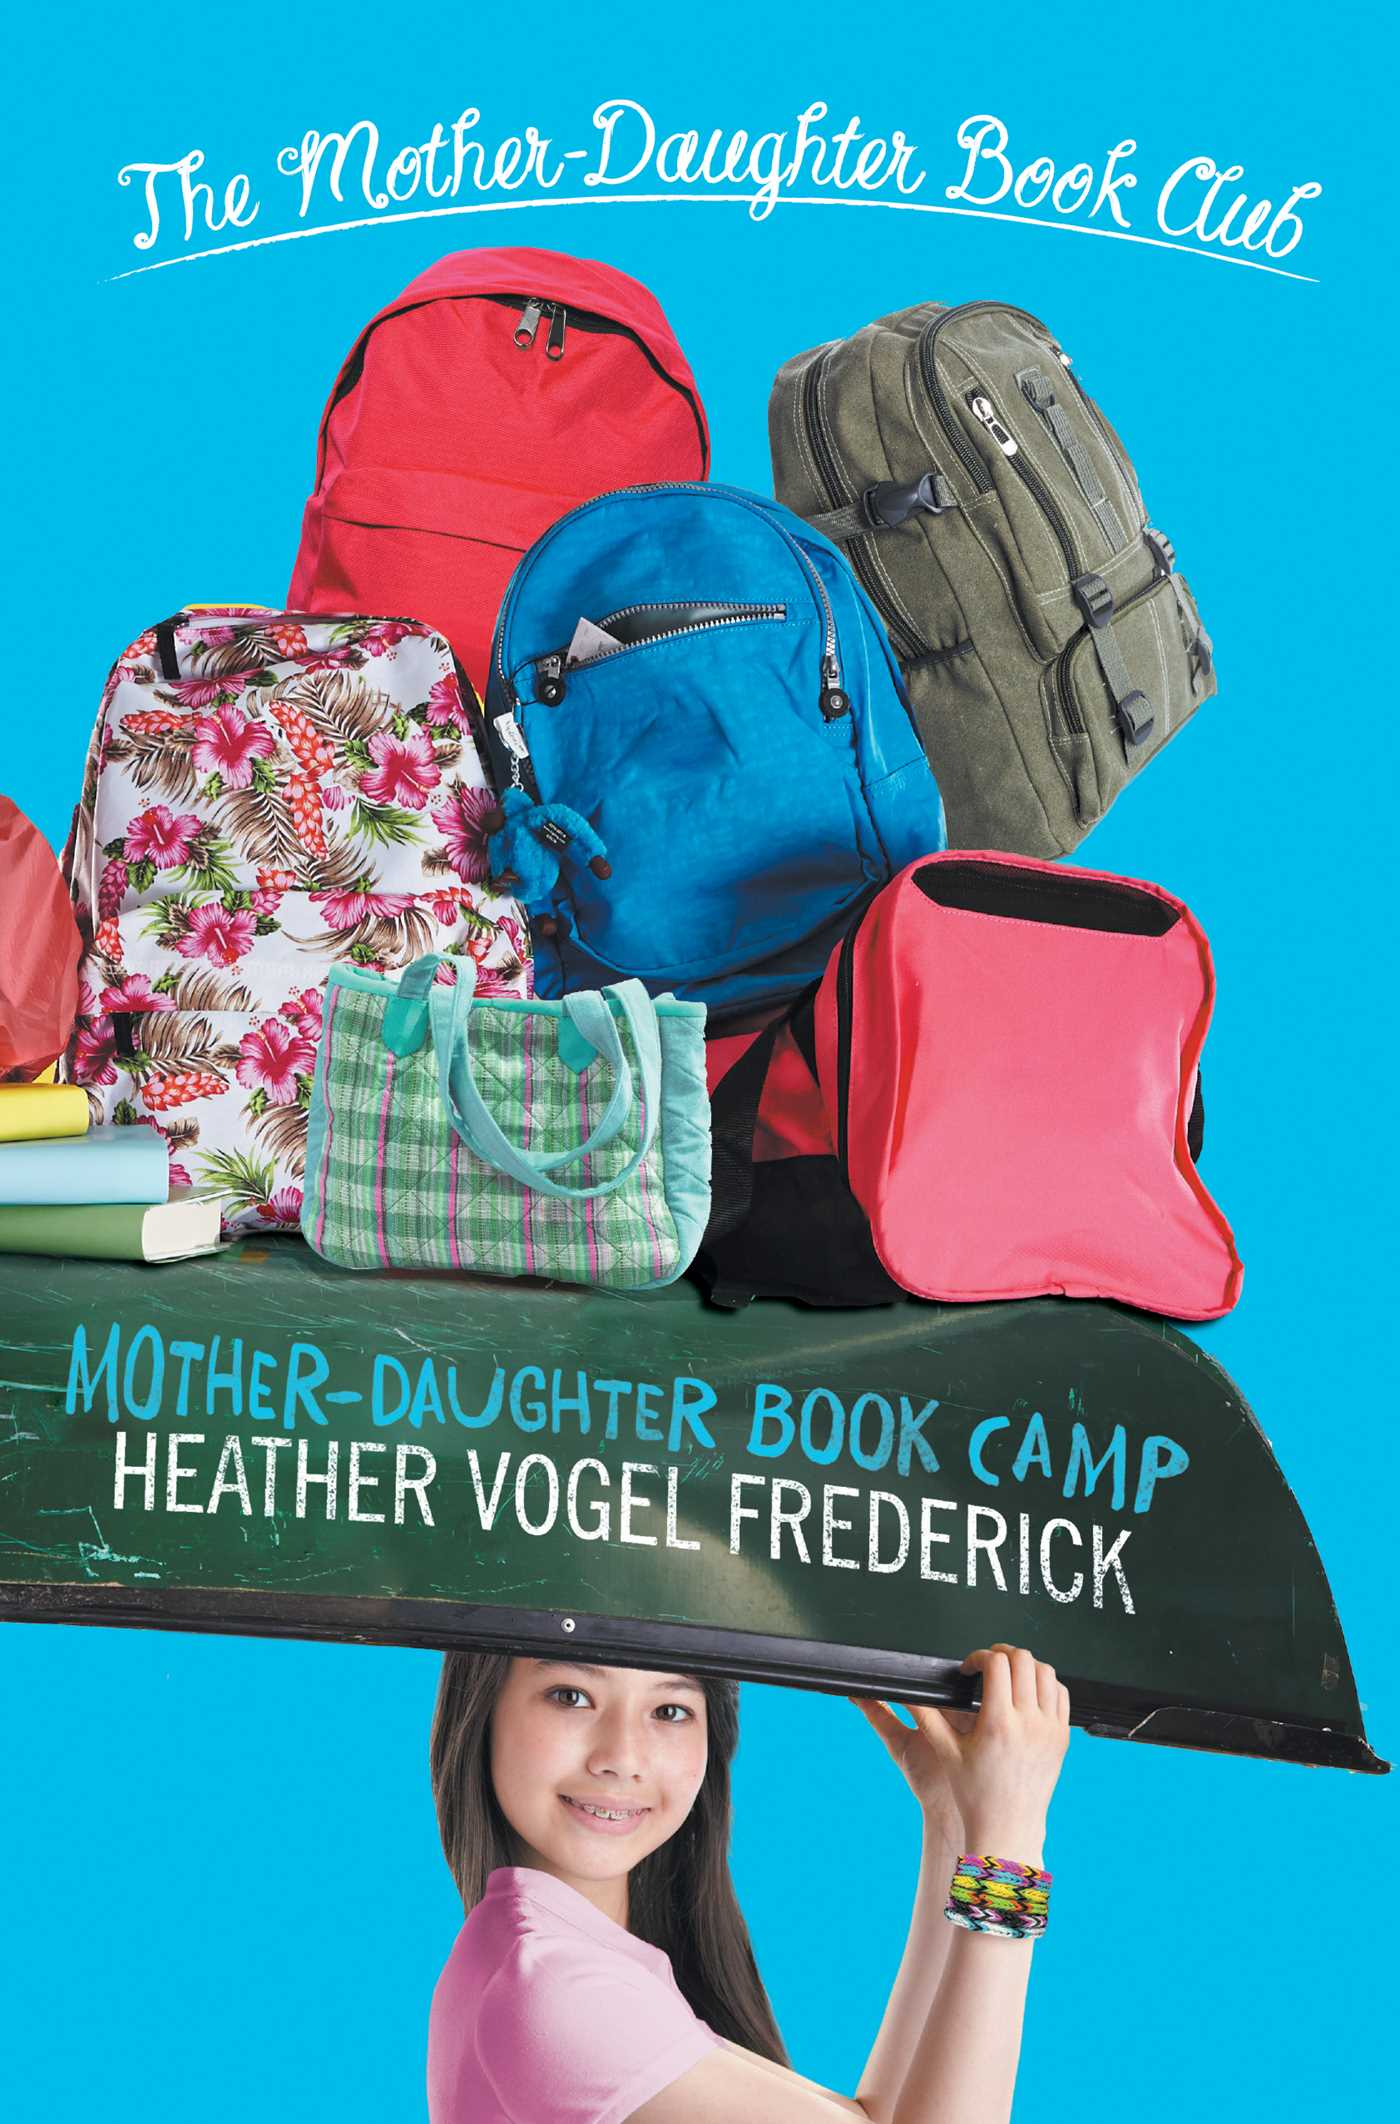 Mother daughter book camp 9781442471849 hr